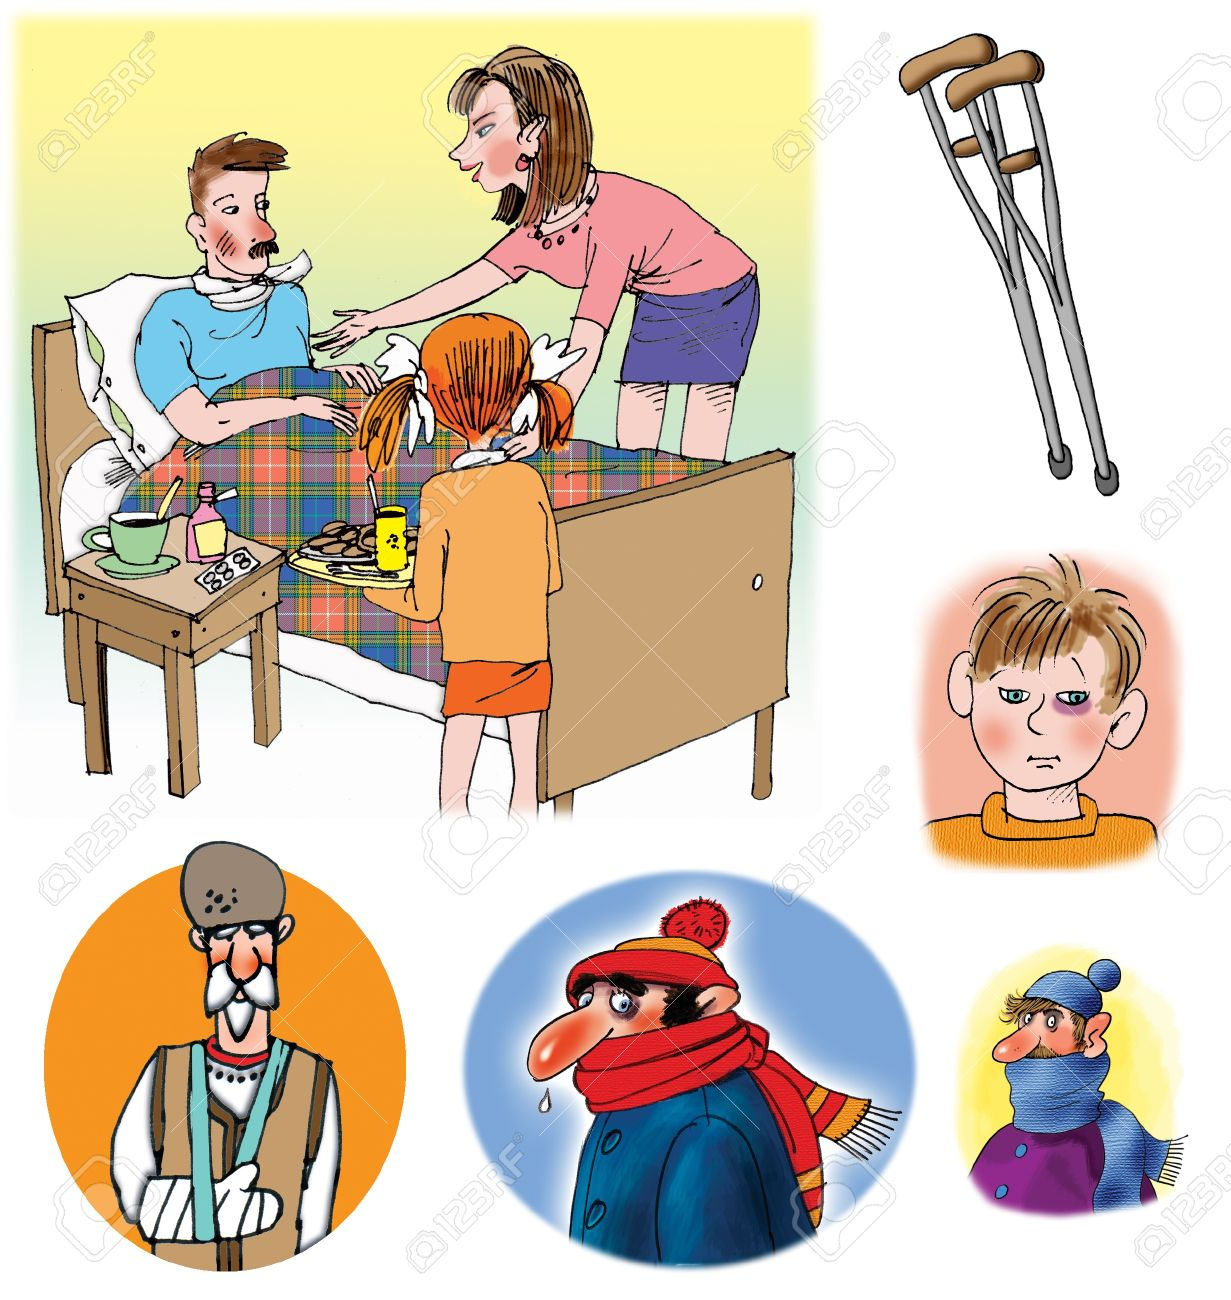 Some Raster illustrations about healthcare and medicine, illness and doctors Stock Illustration - 8543458